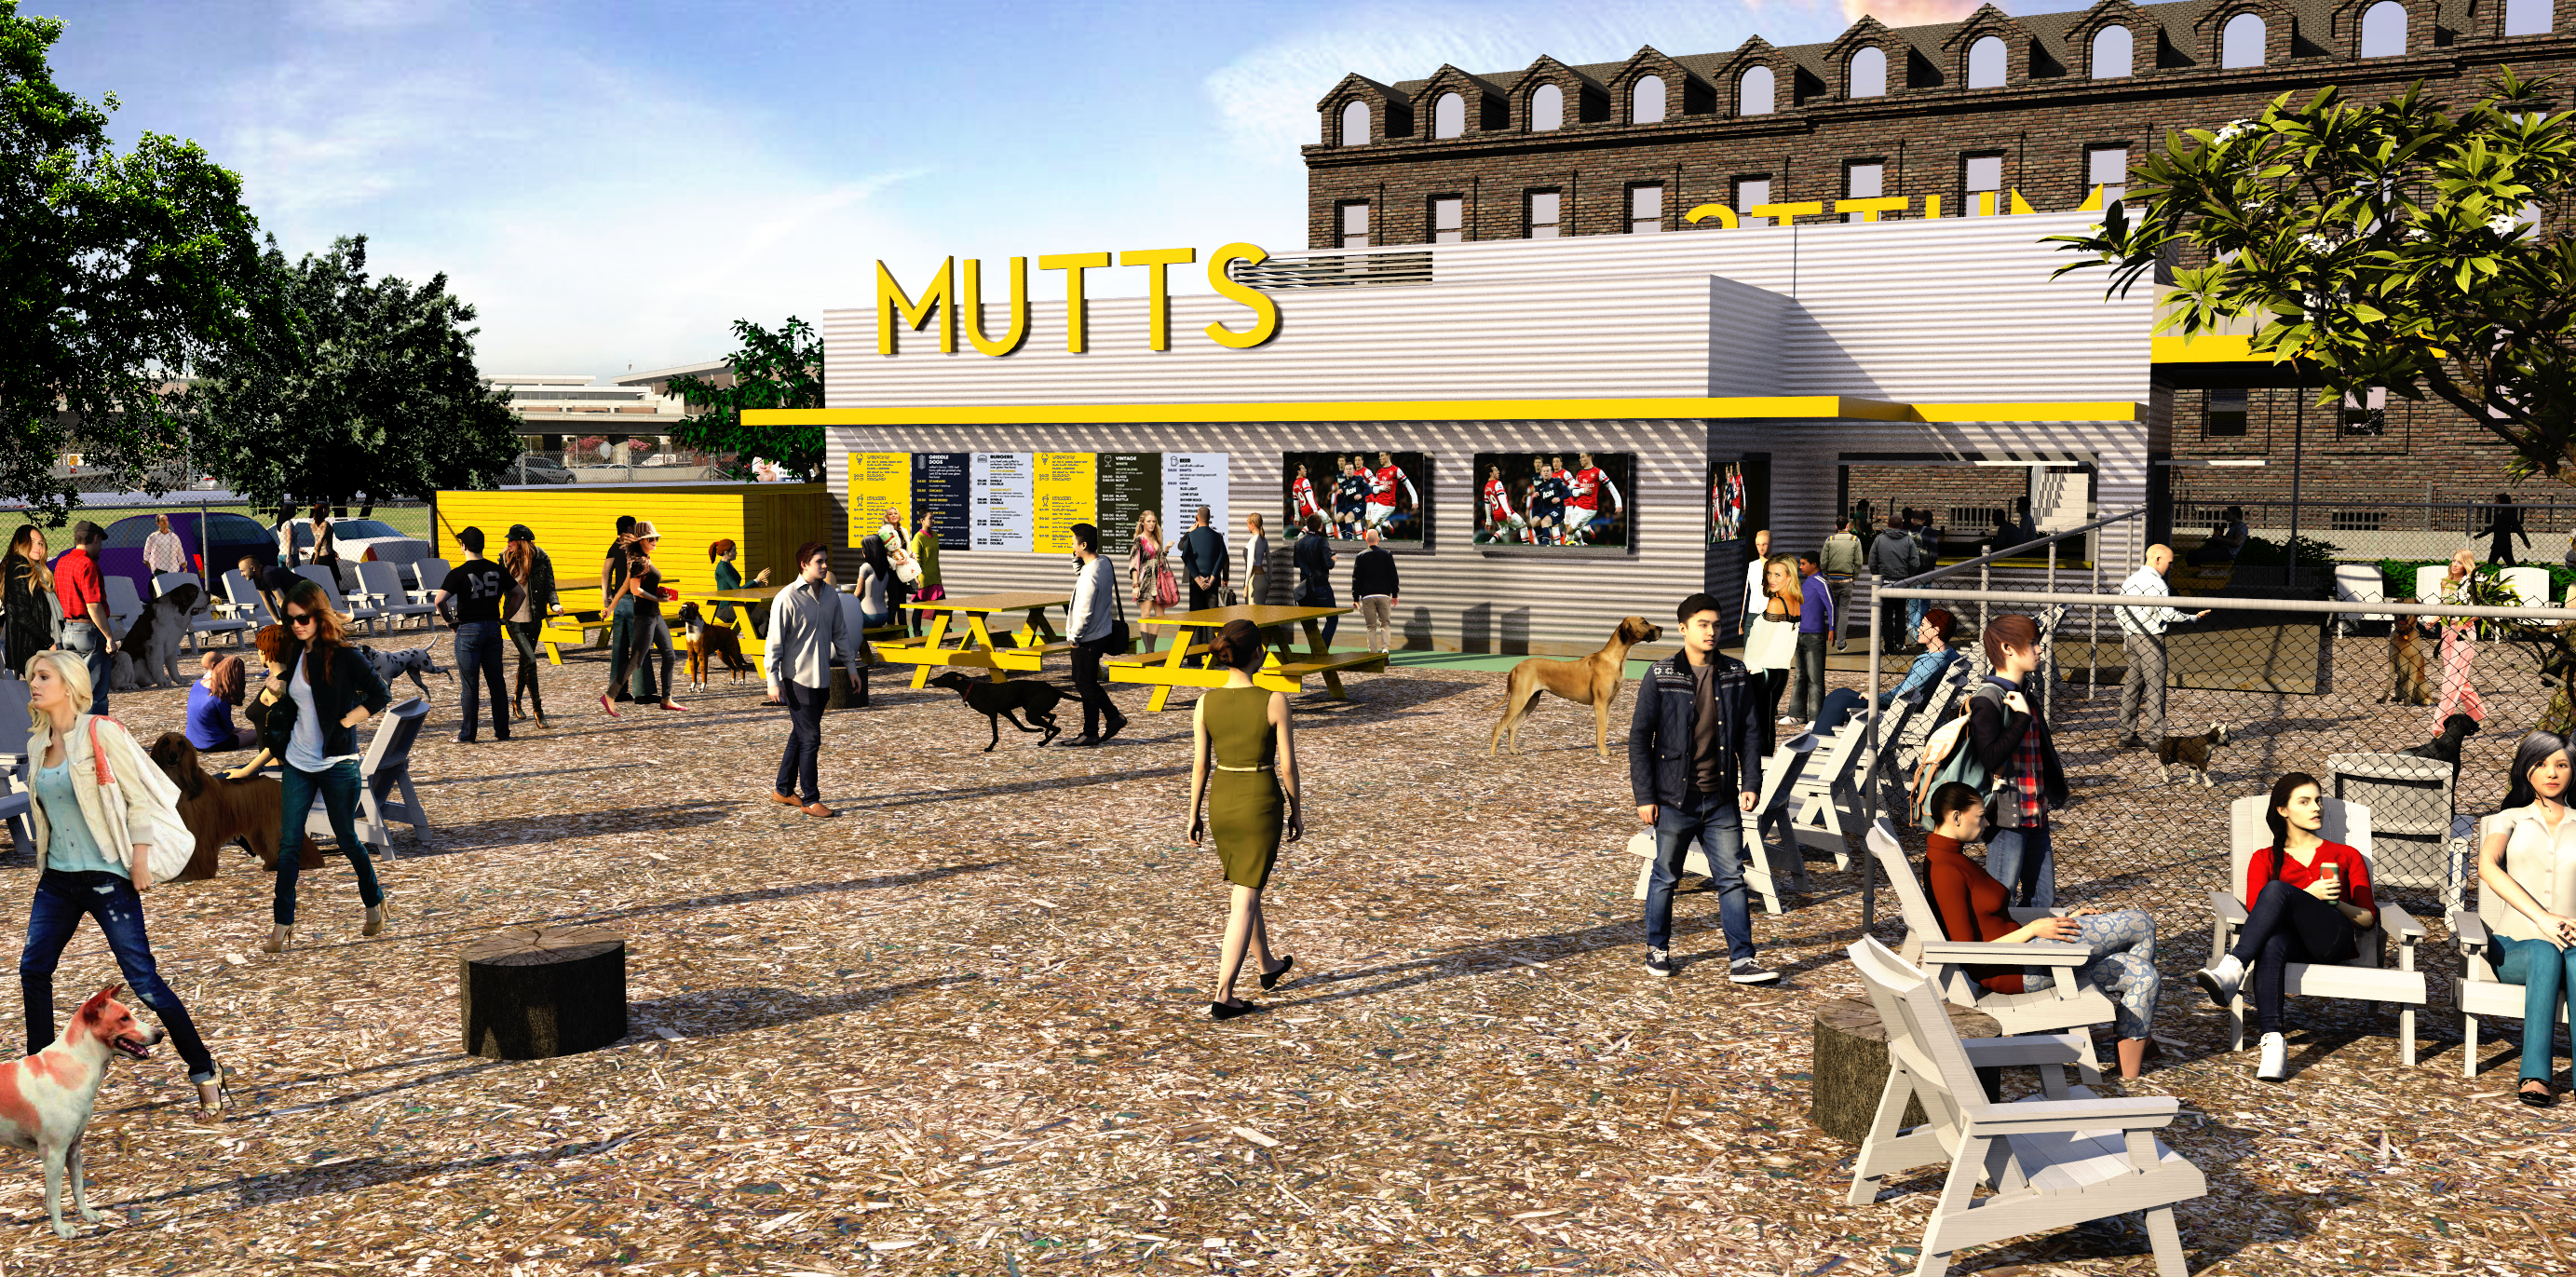 MUTTS REAR PERSPECTIVE